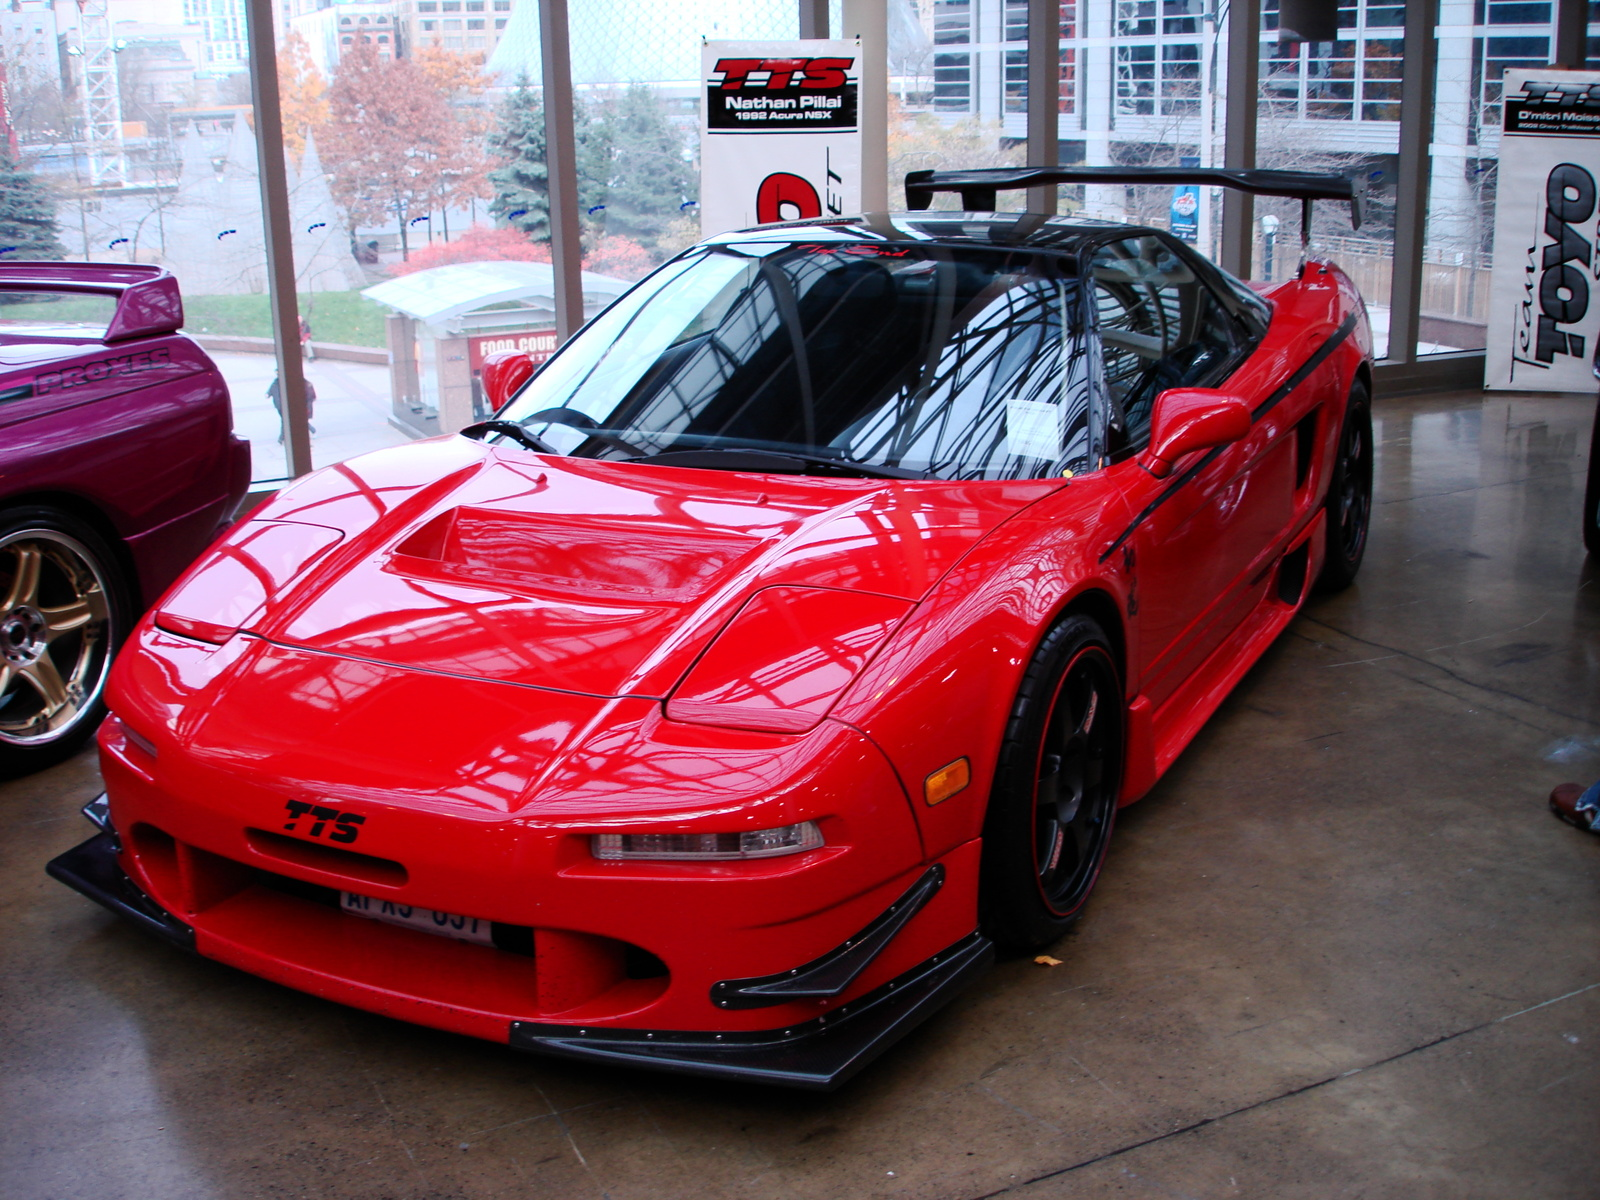 2000 Acura NSX 2 Dr STD Coupe picture